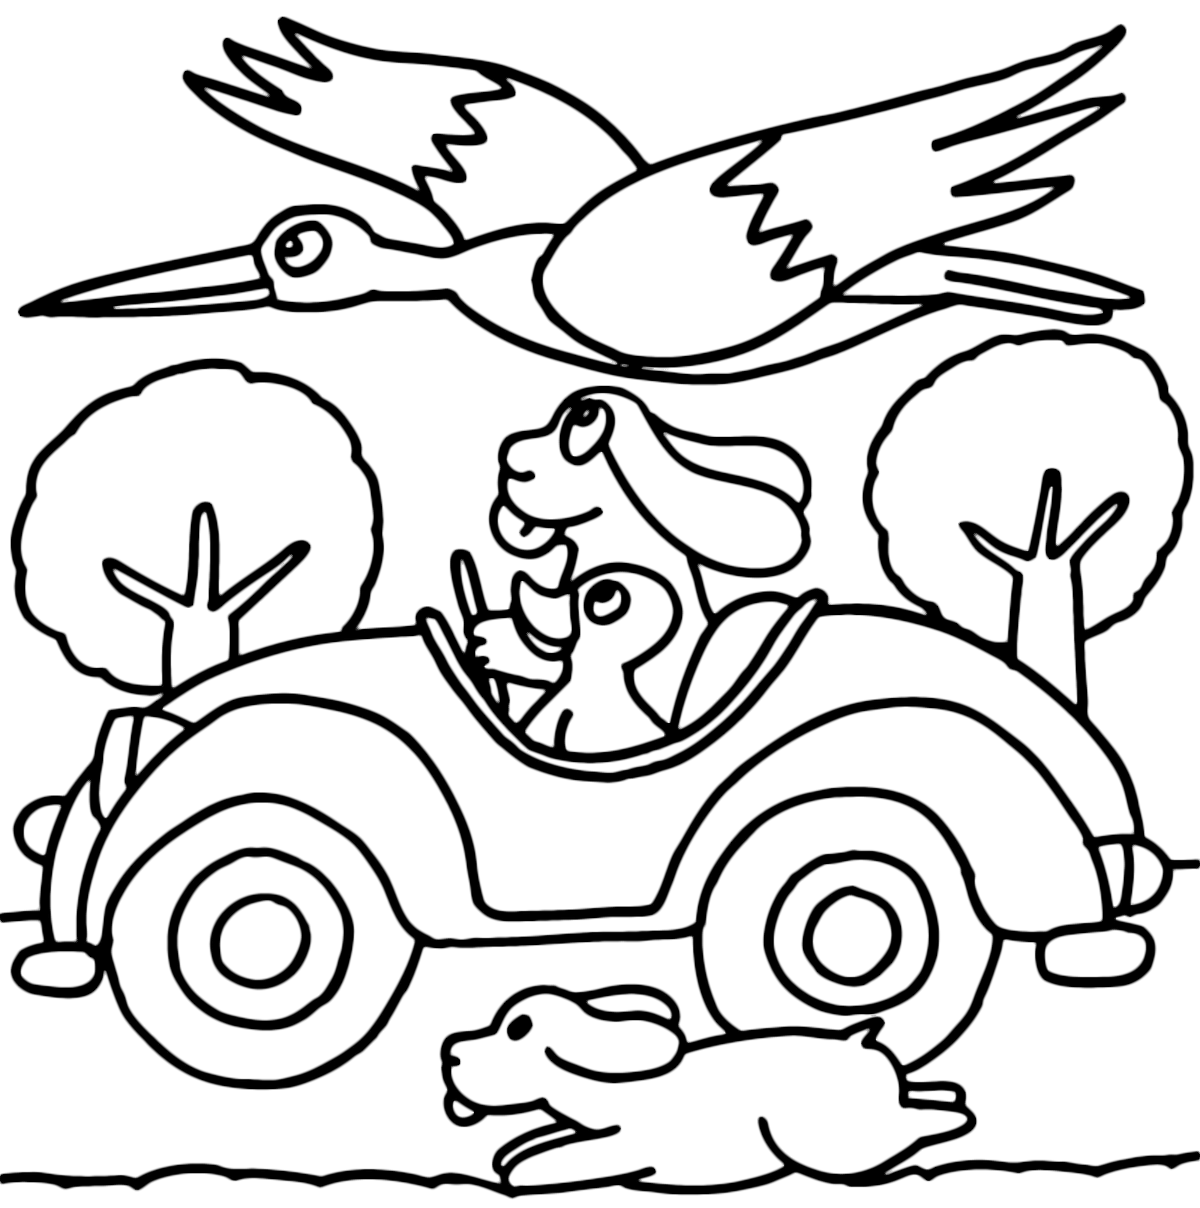 Difficult coloring pages of ivory ella coloring pages for Ella coloring pages